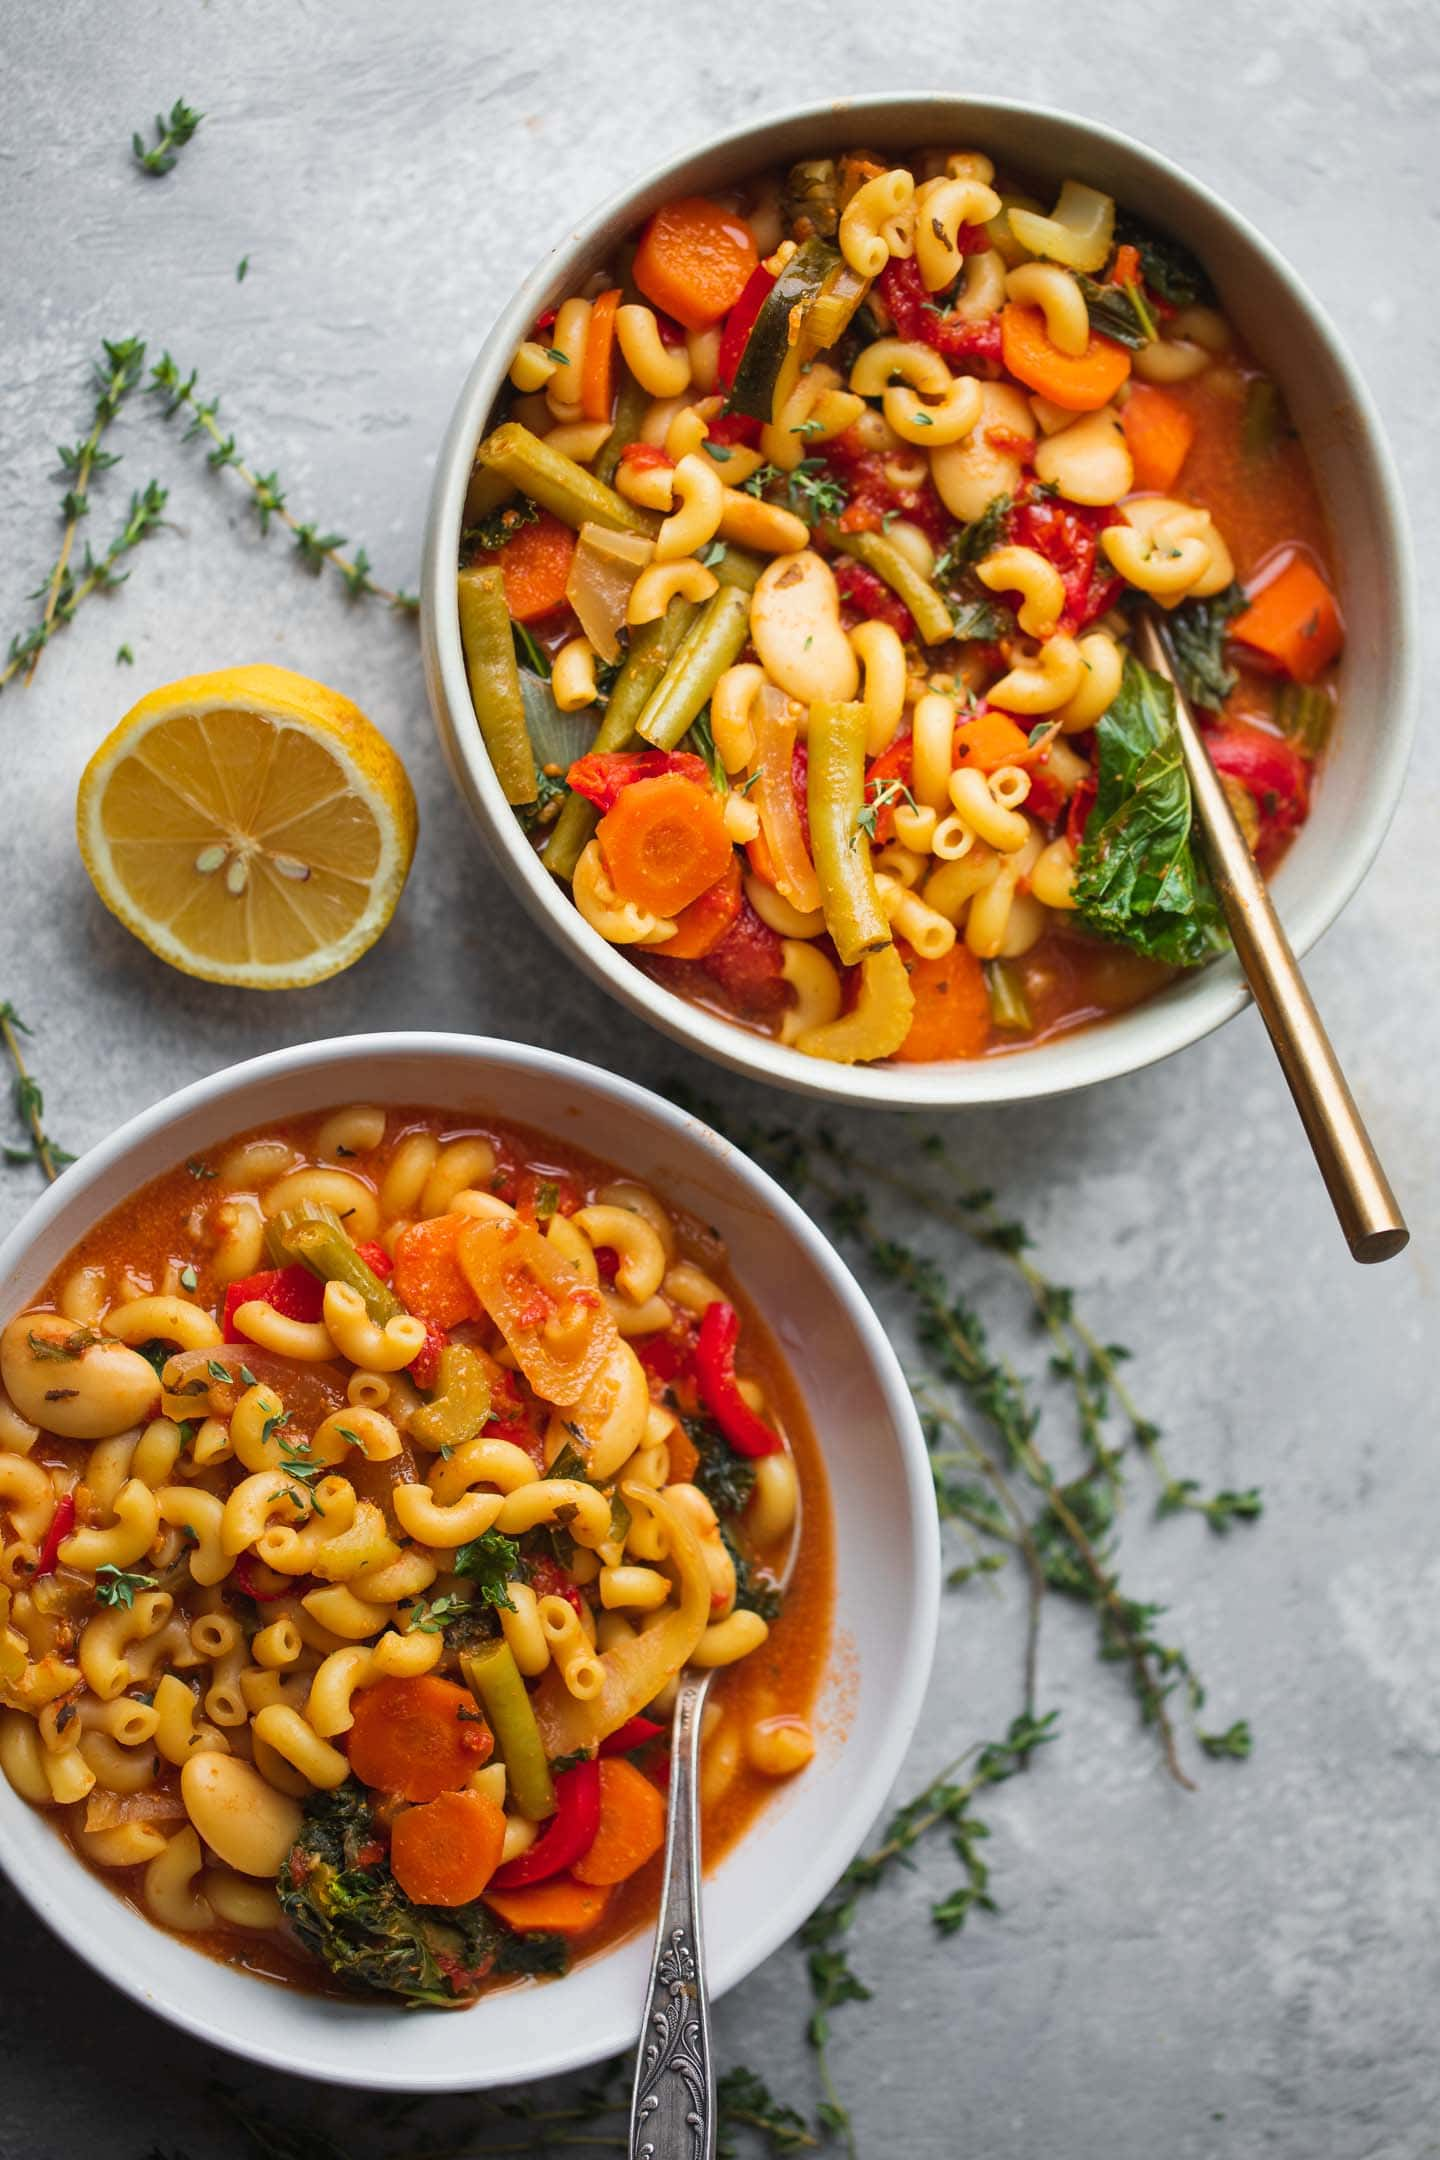 Two bowls of vegan minestrone soup